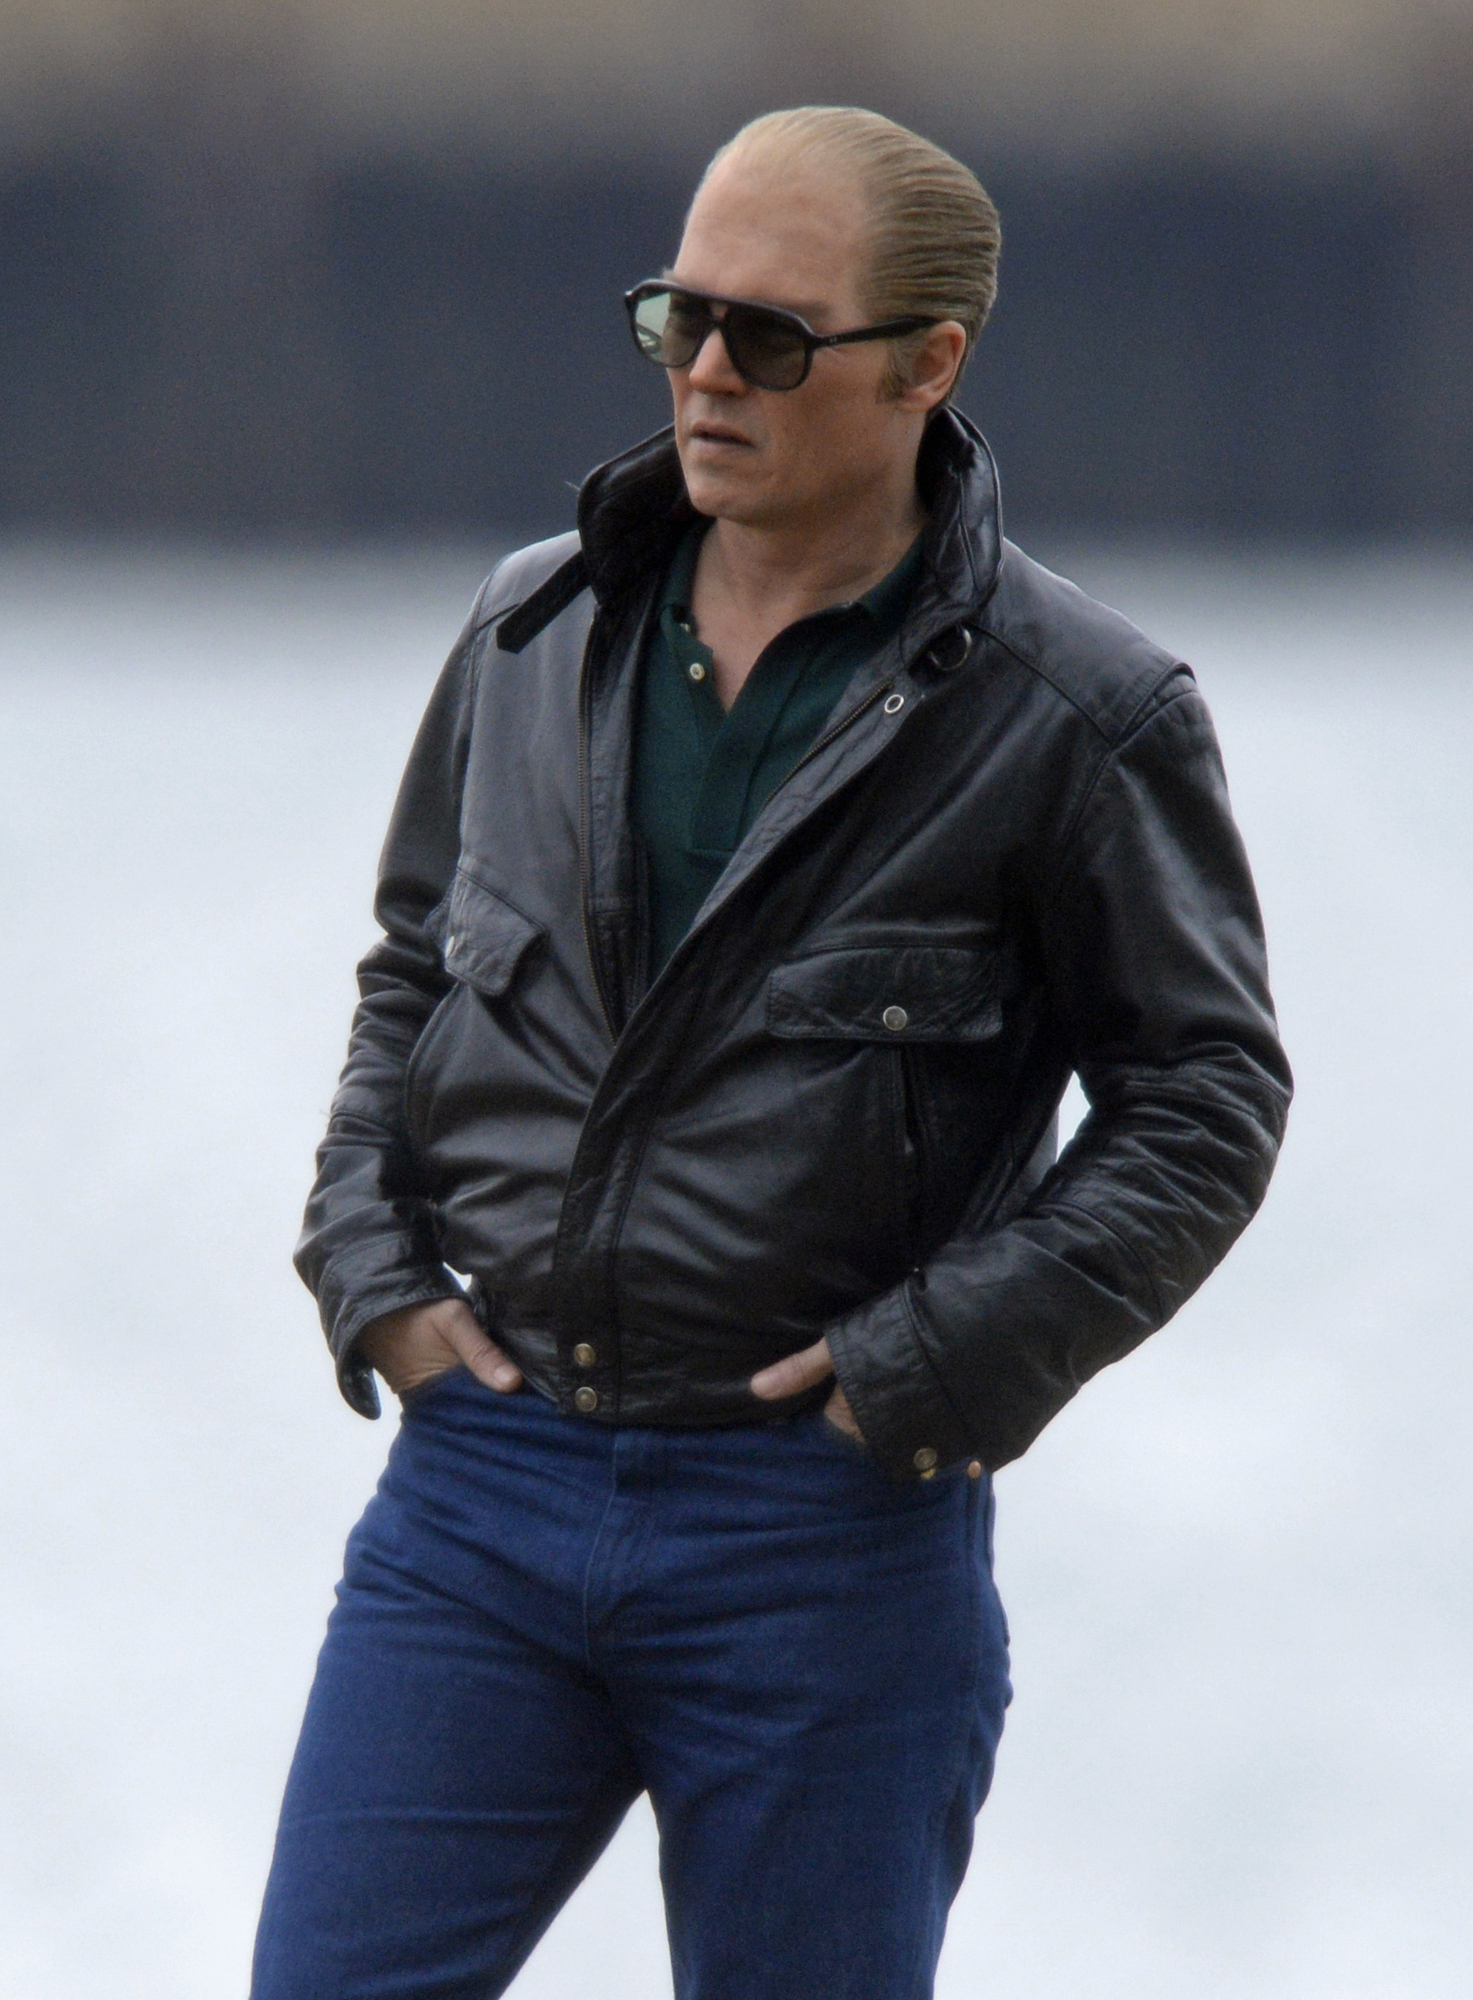 Johnny Depp Whitey Bulger Black Mass Jacket